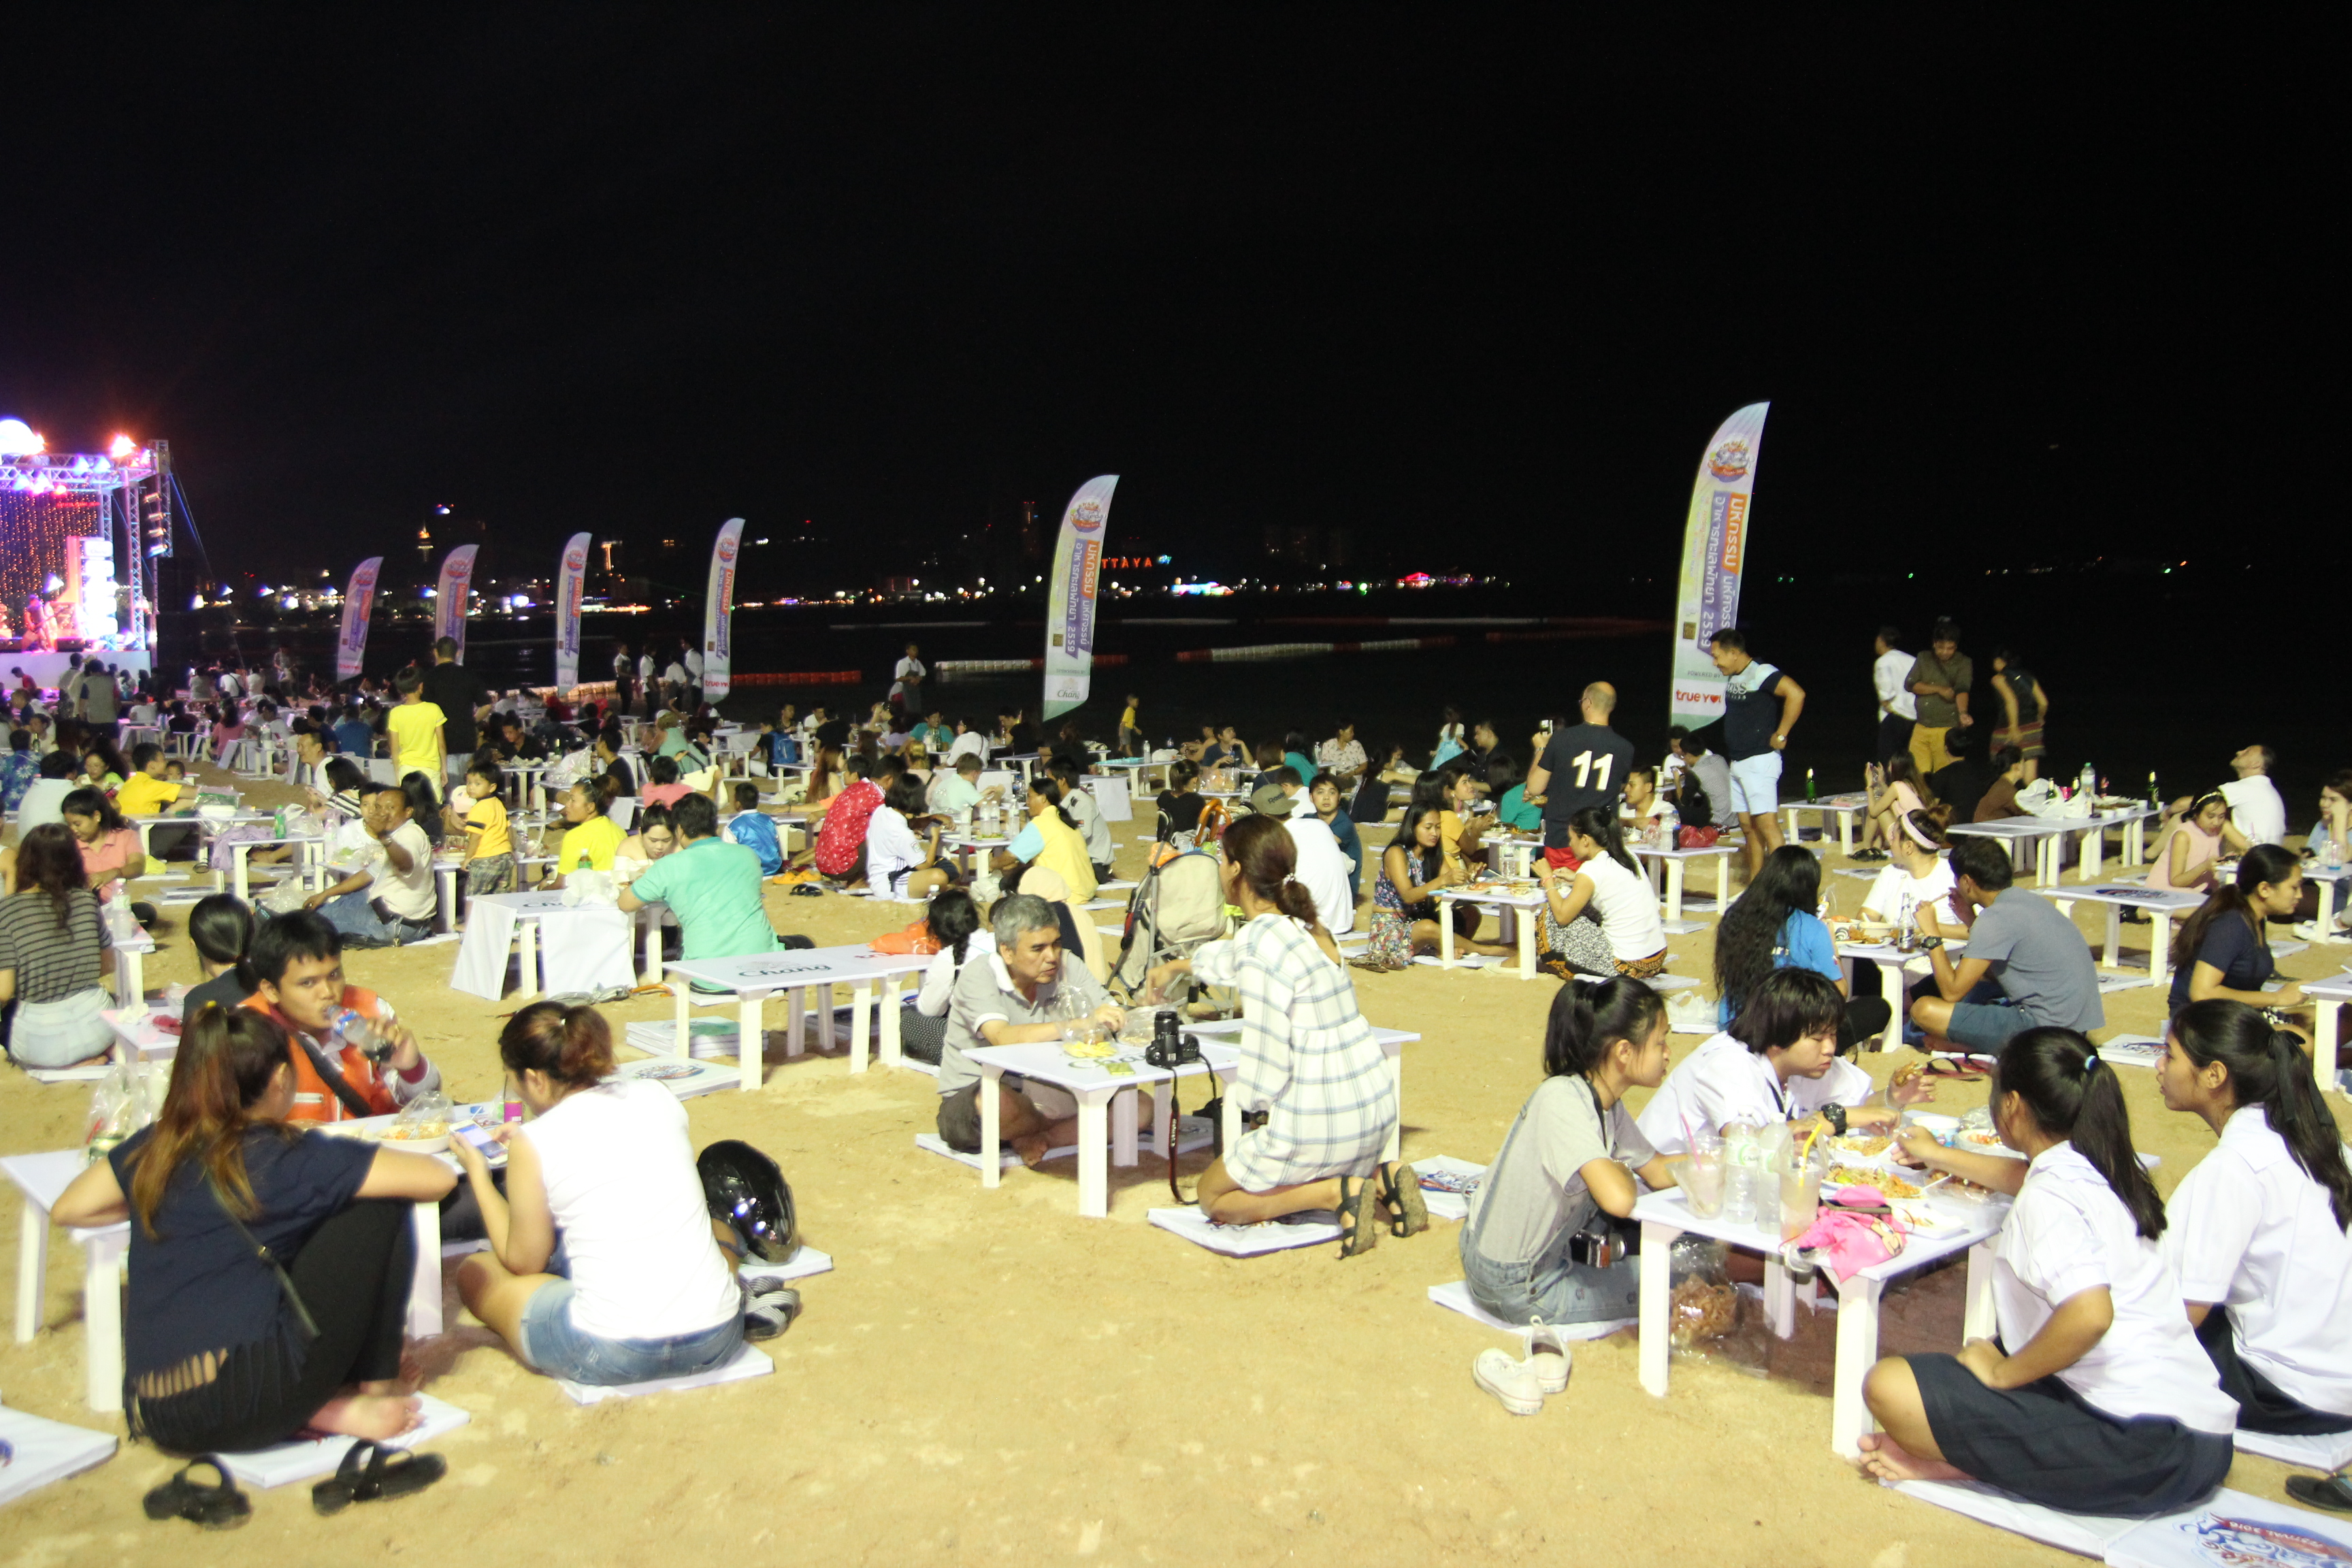 It will be all-you-can-eat seafood on Beach Road May 5-7 as the Amazing Seafood Festival returns to Pattaya.